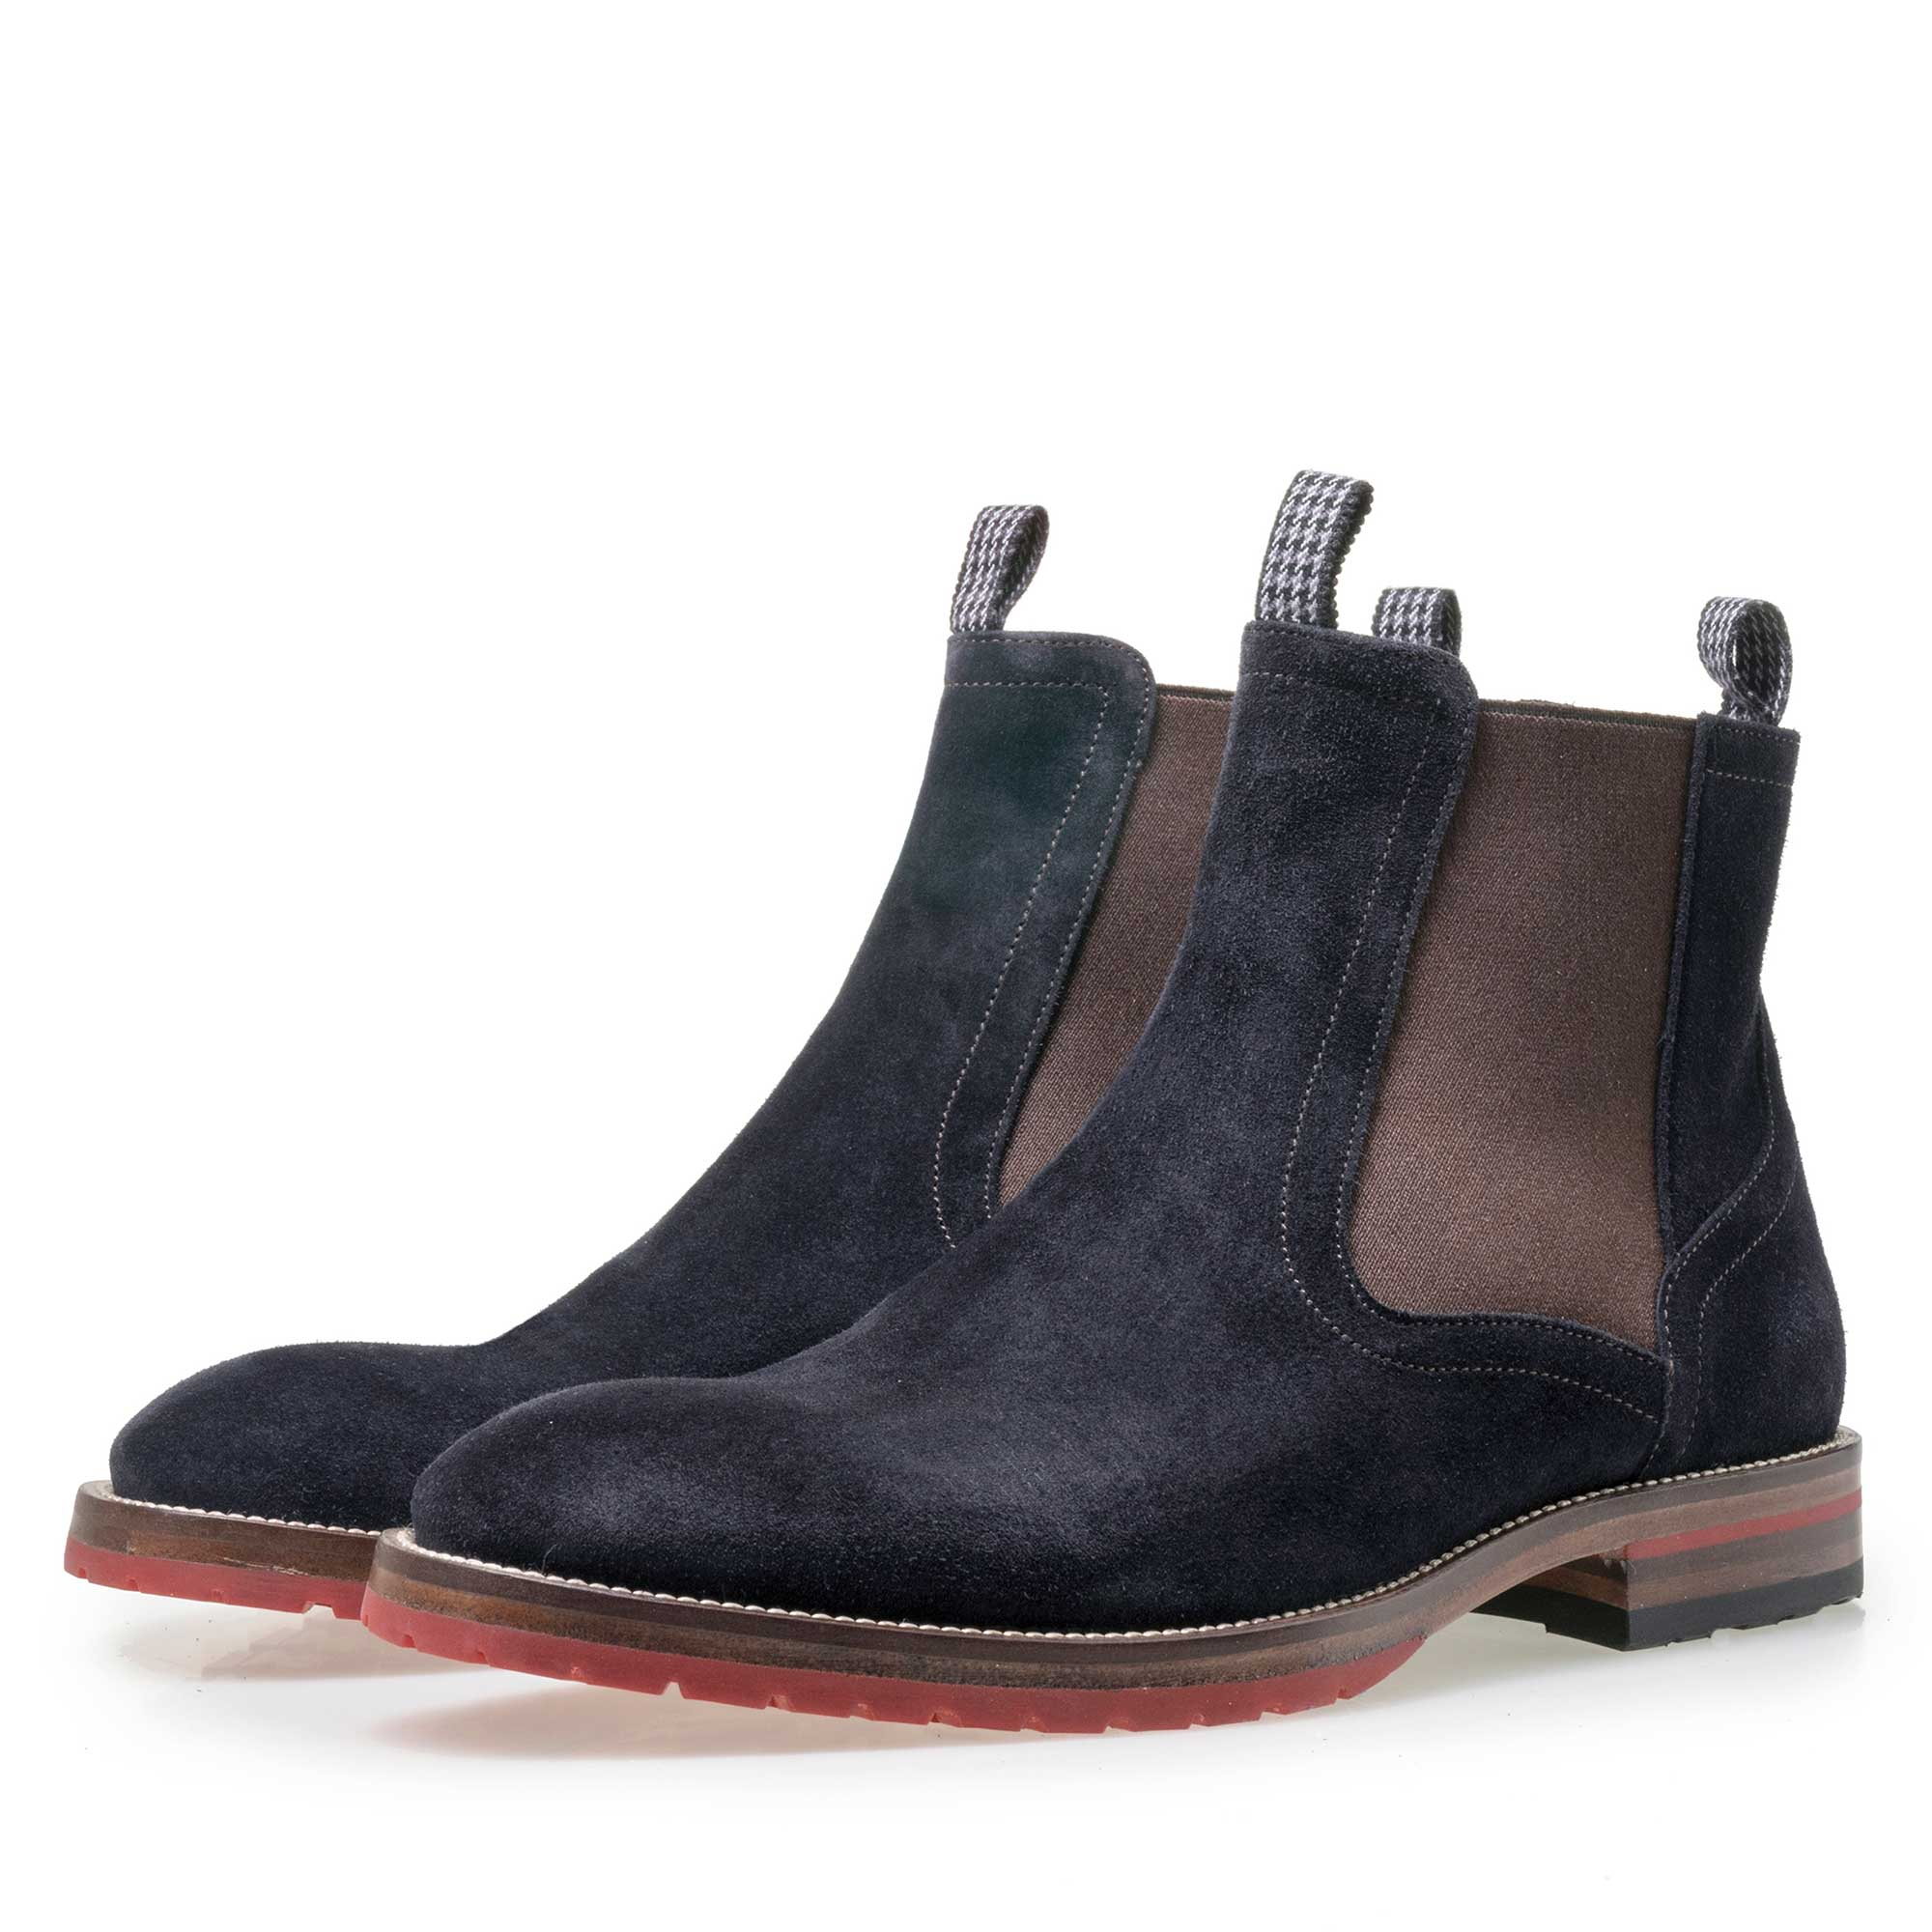 10976/00 - Floris van Bommel men's blue suede leather Chelsea boot